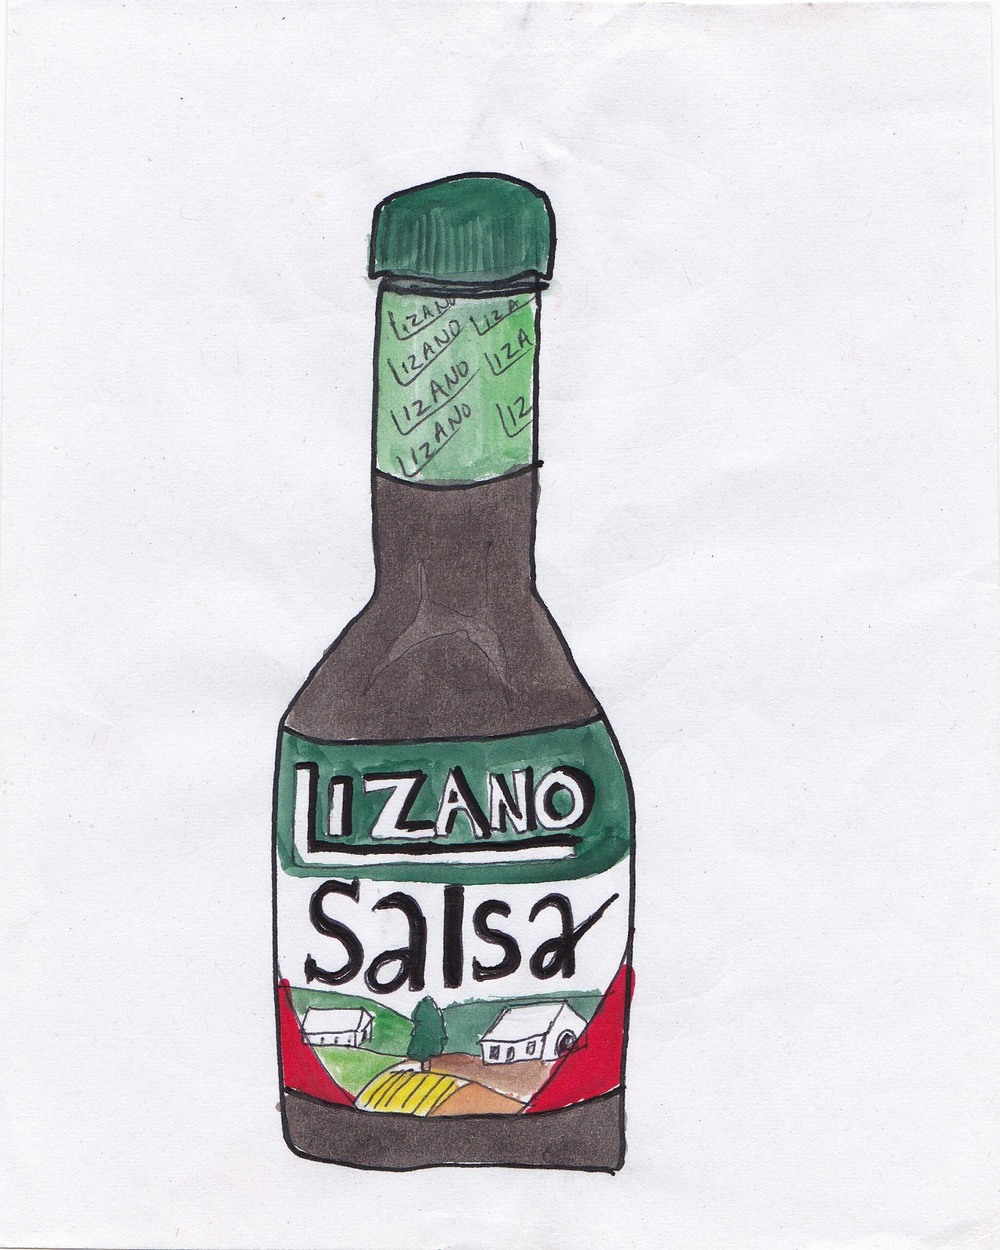 Salsa Lizano is the Costa Rican equivalent to Ketchup in the UK. It's an emalgamation of spicy flavors and i t goes with pretty much everything. It's like a spicy brown ketchup.